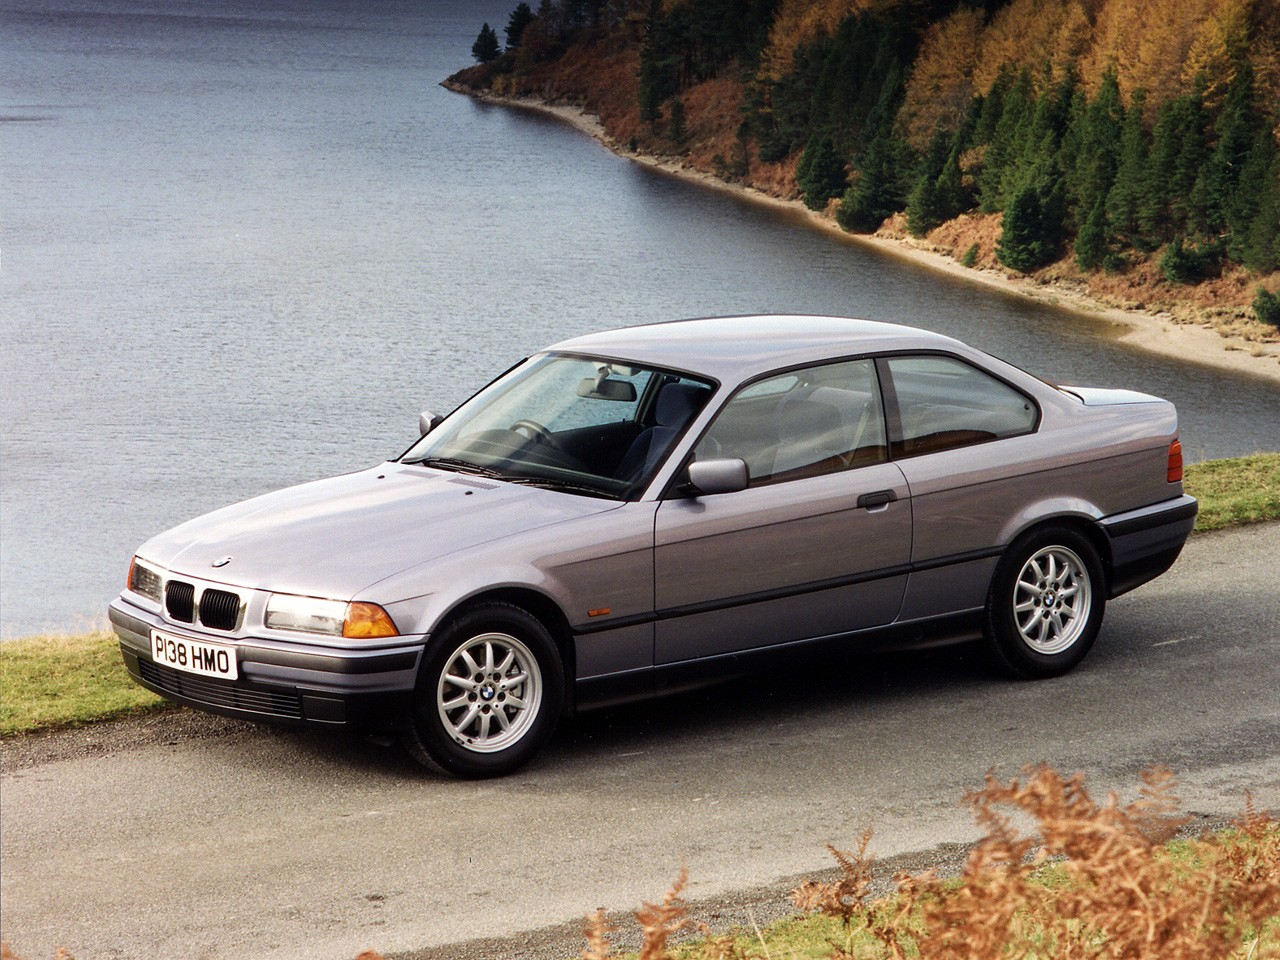 ... BMW 3 Series Coupe (E36) (1992 - 1998) ...